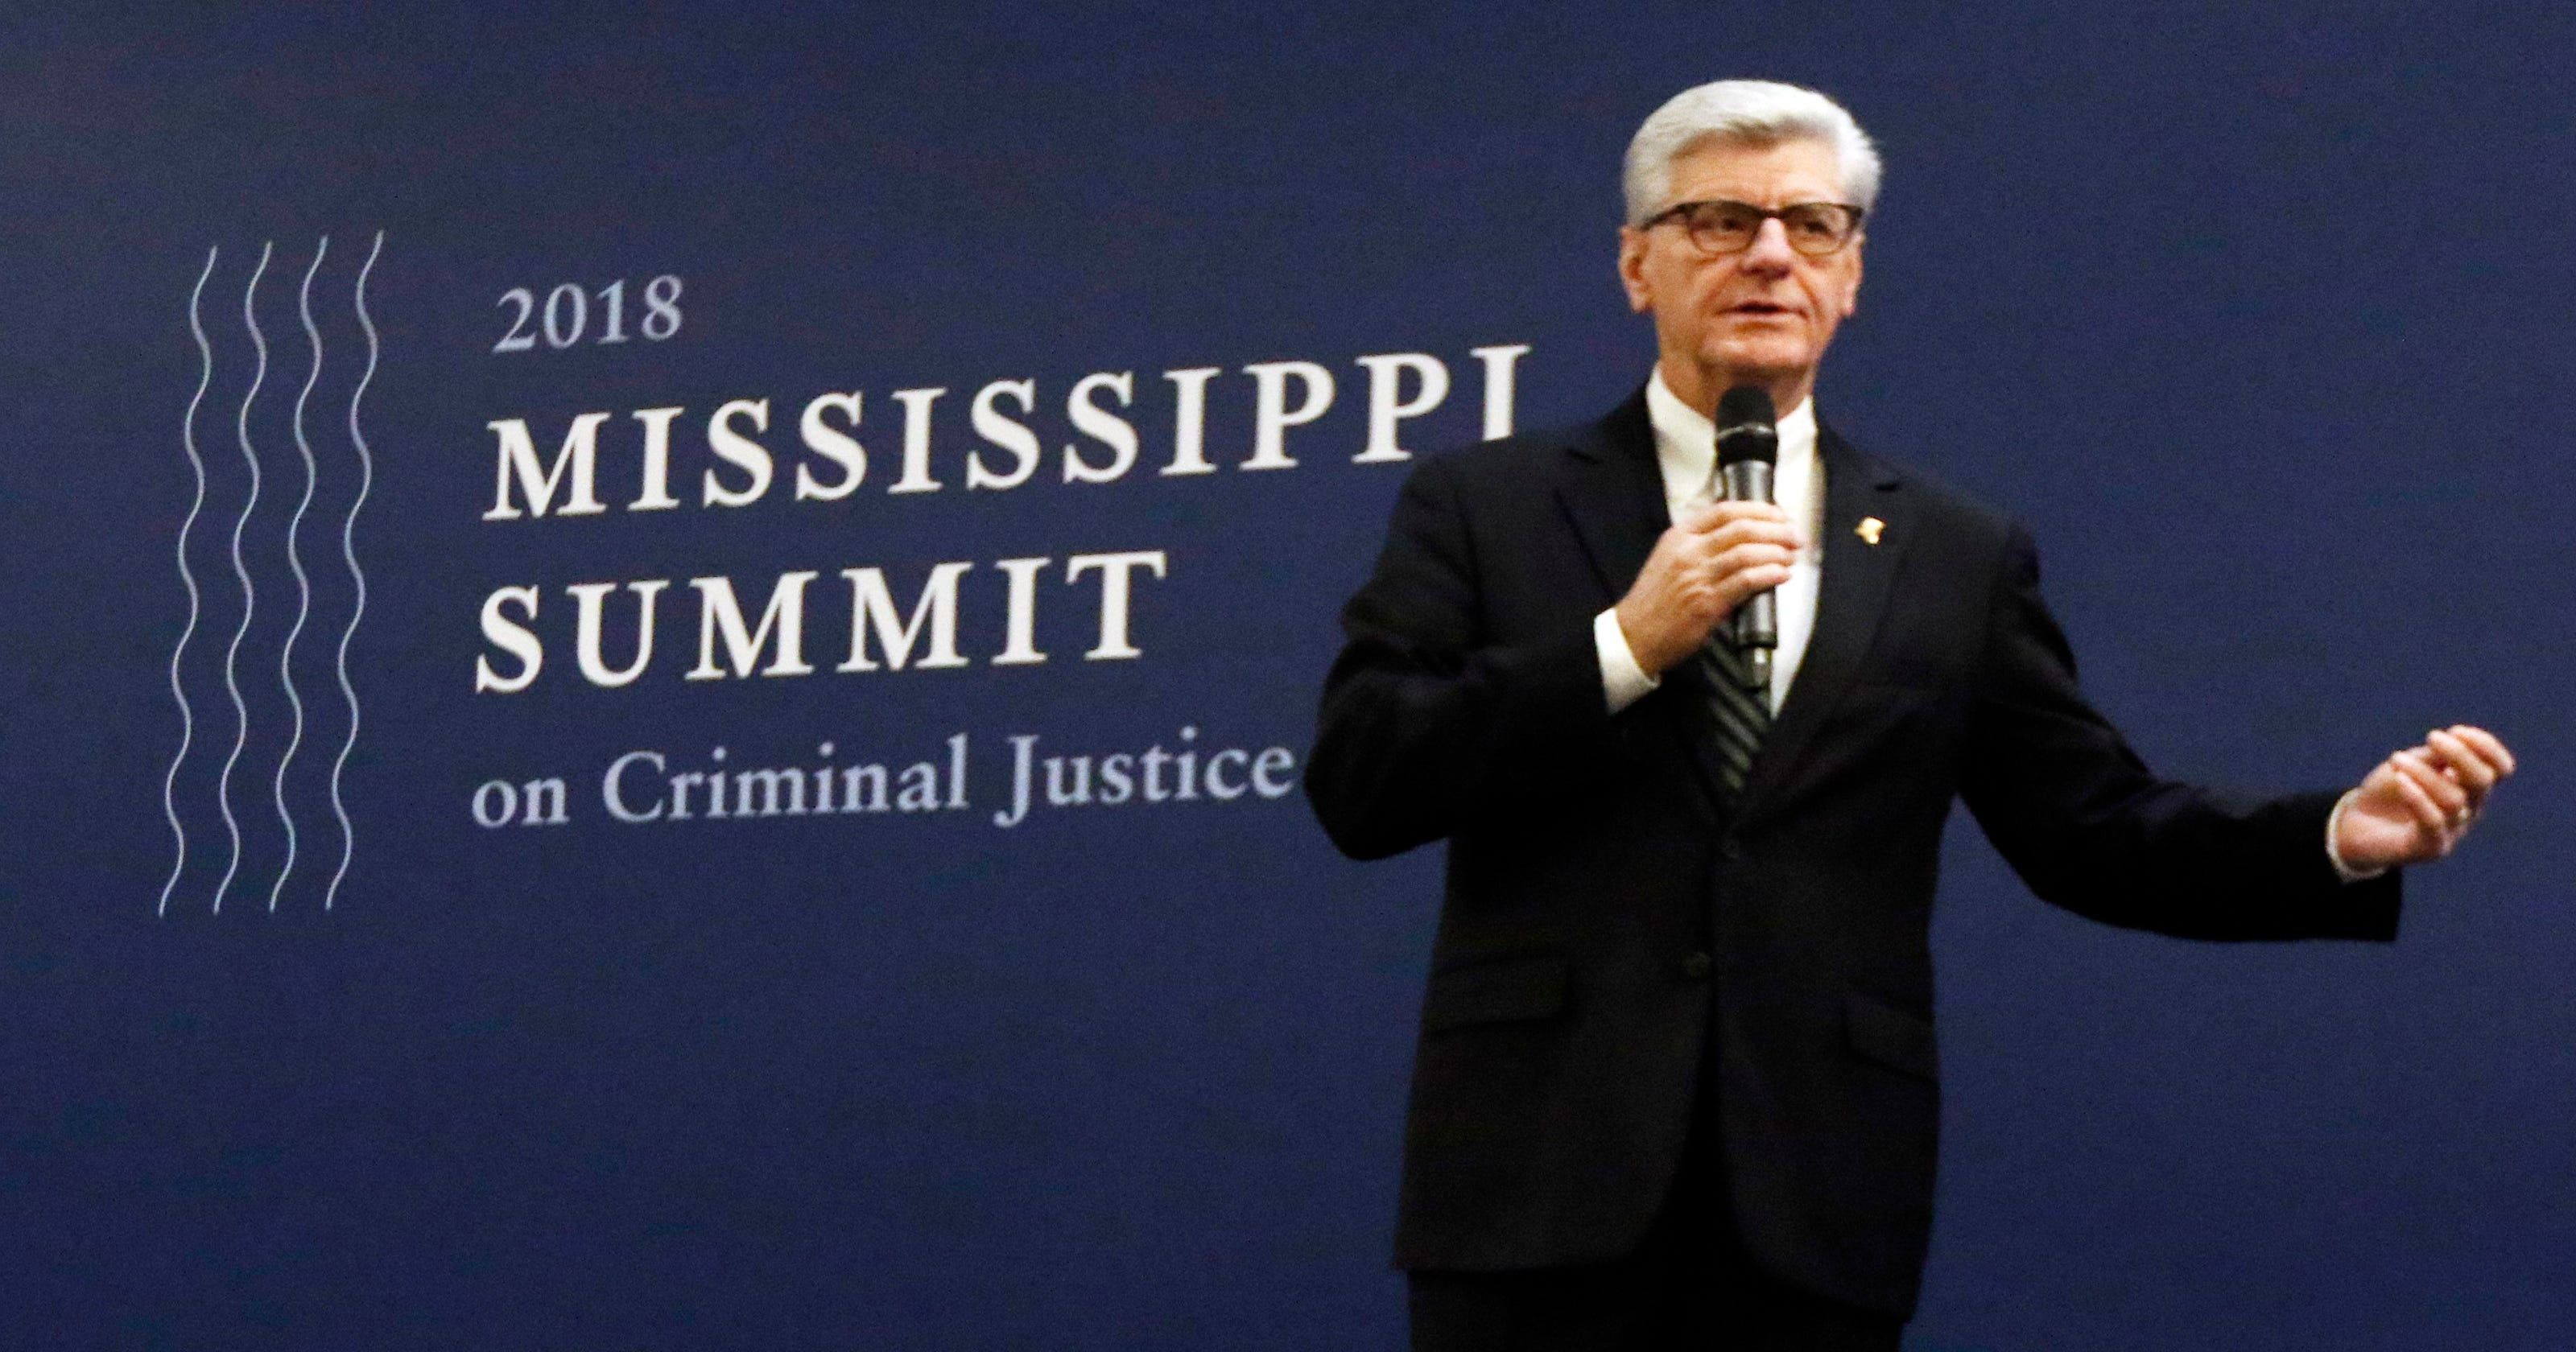 Criminal justice reform in Mississippi